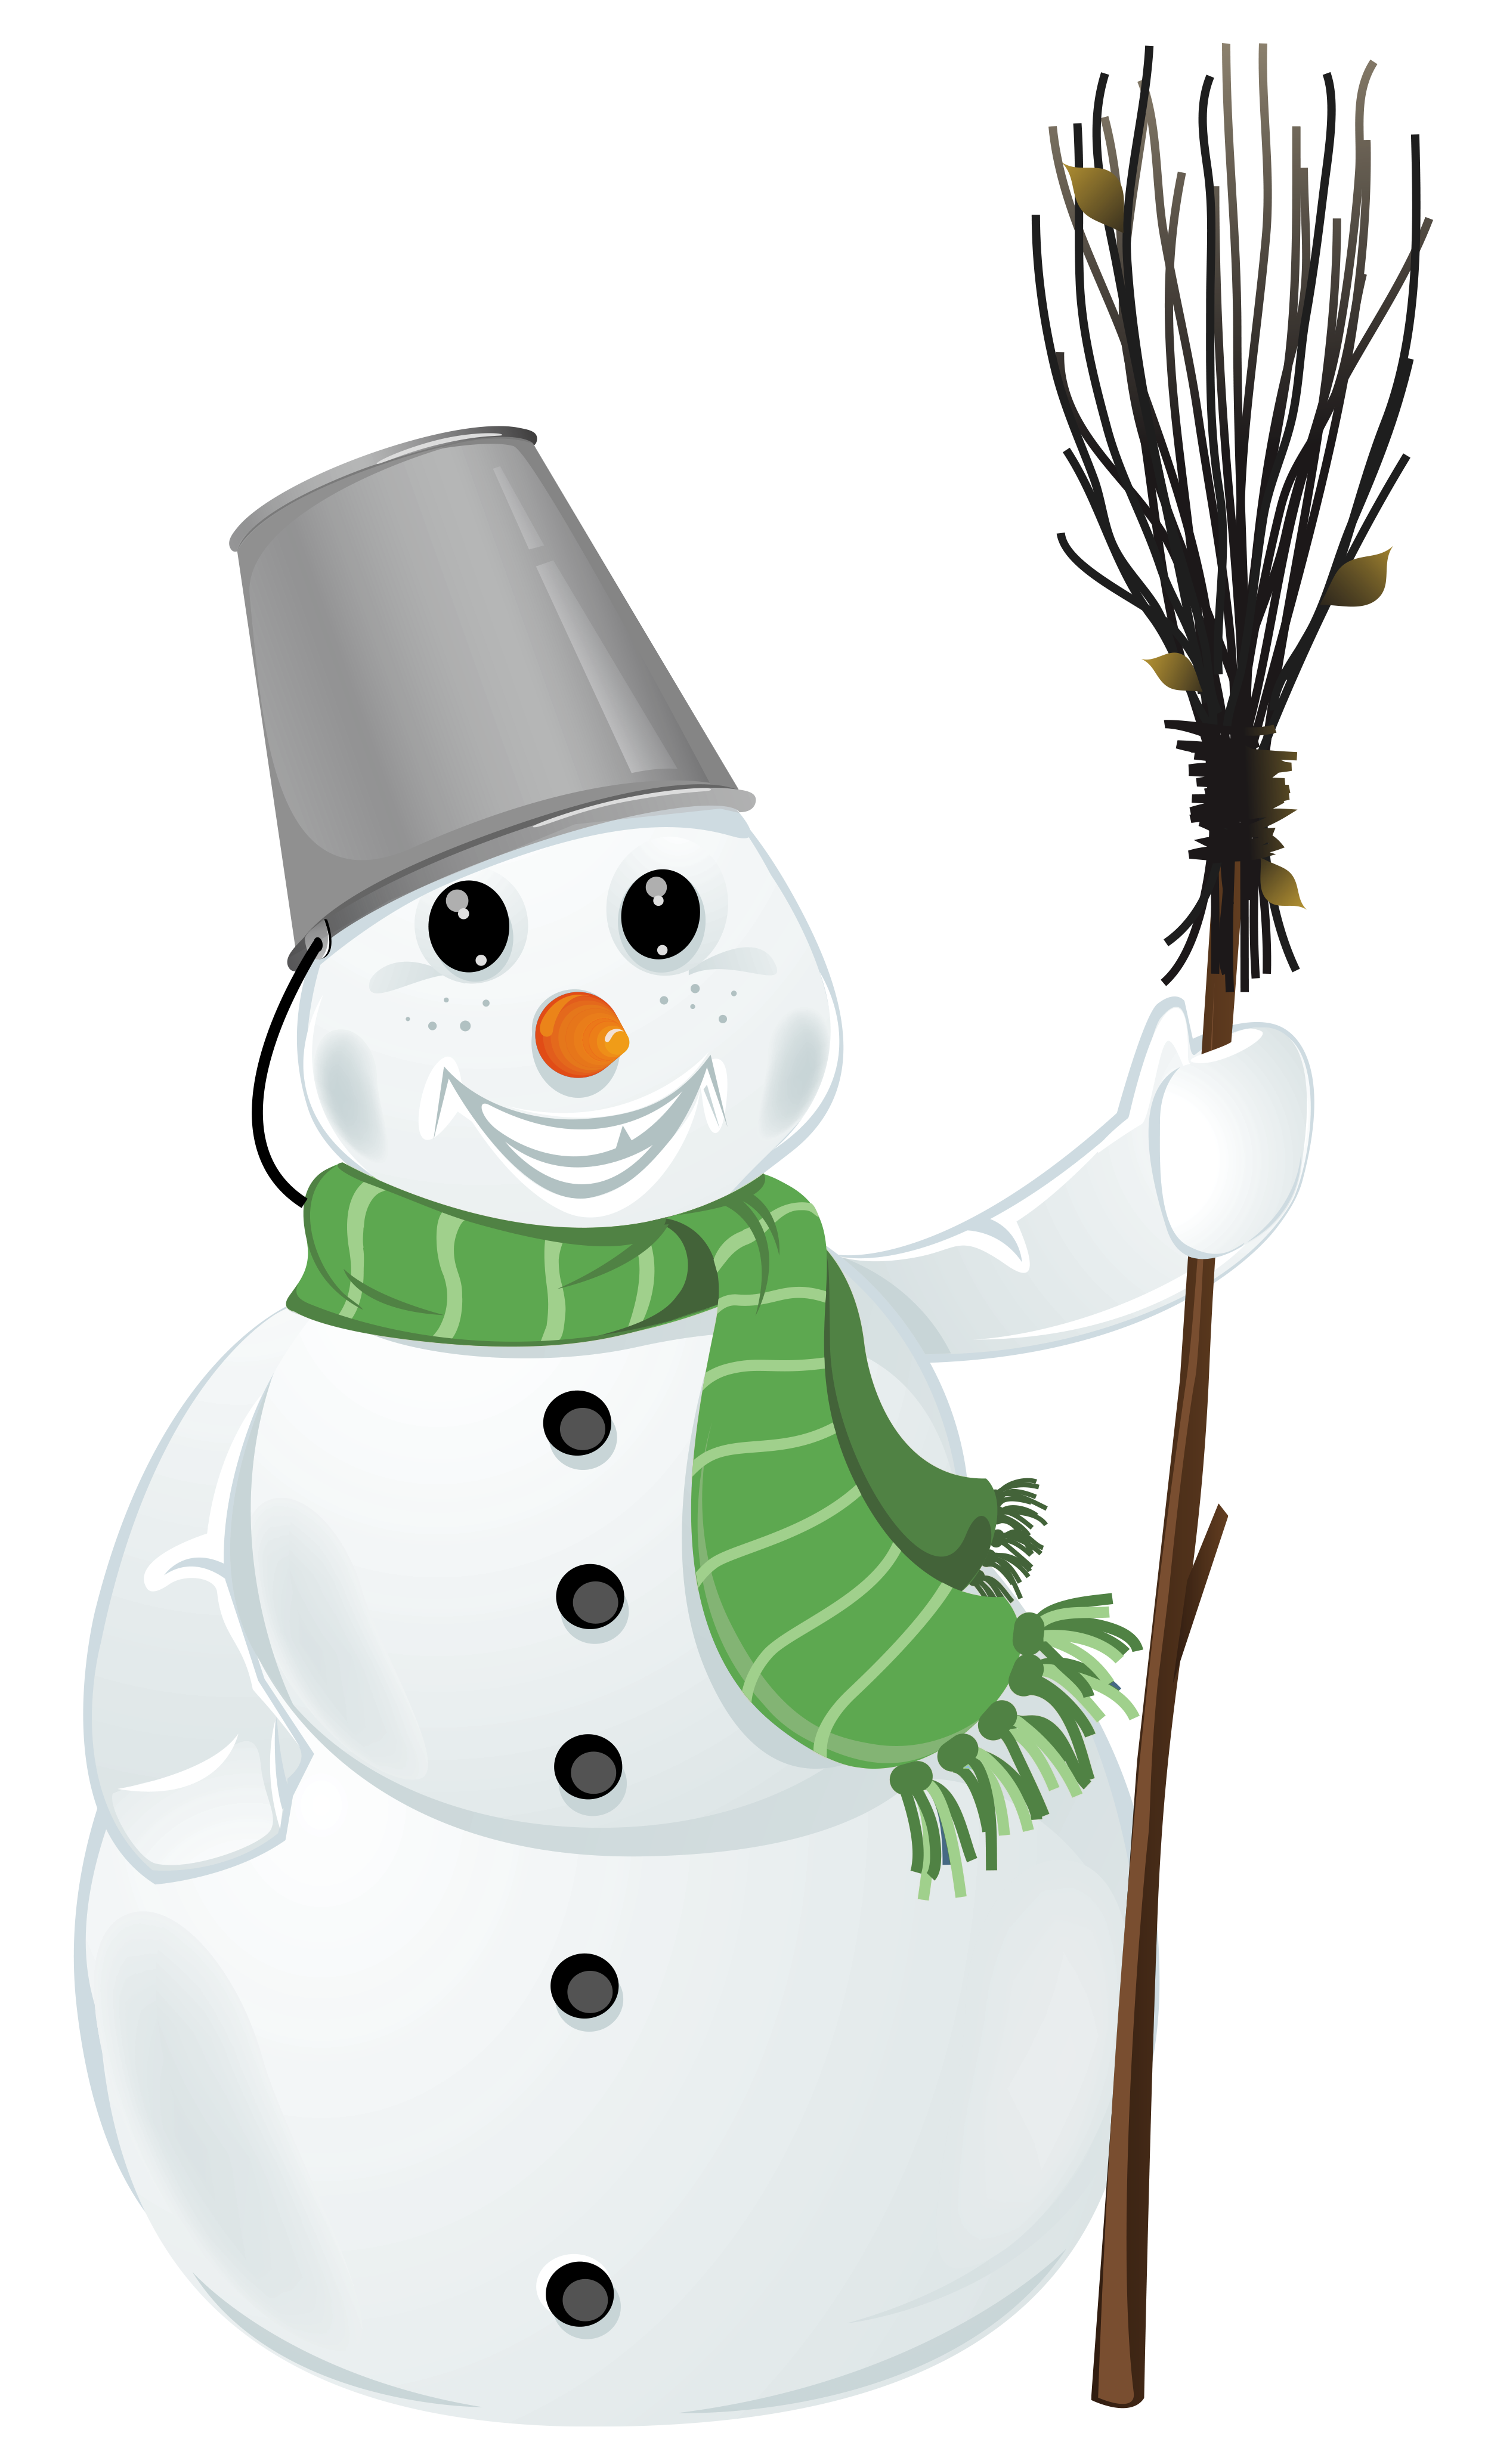 Transparent snowman clipart 0